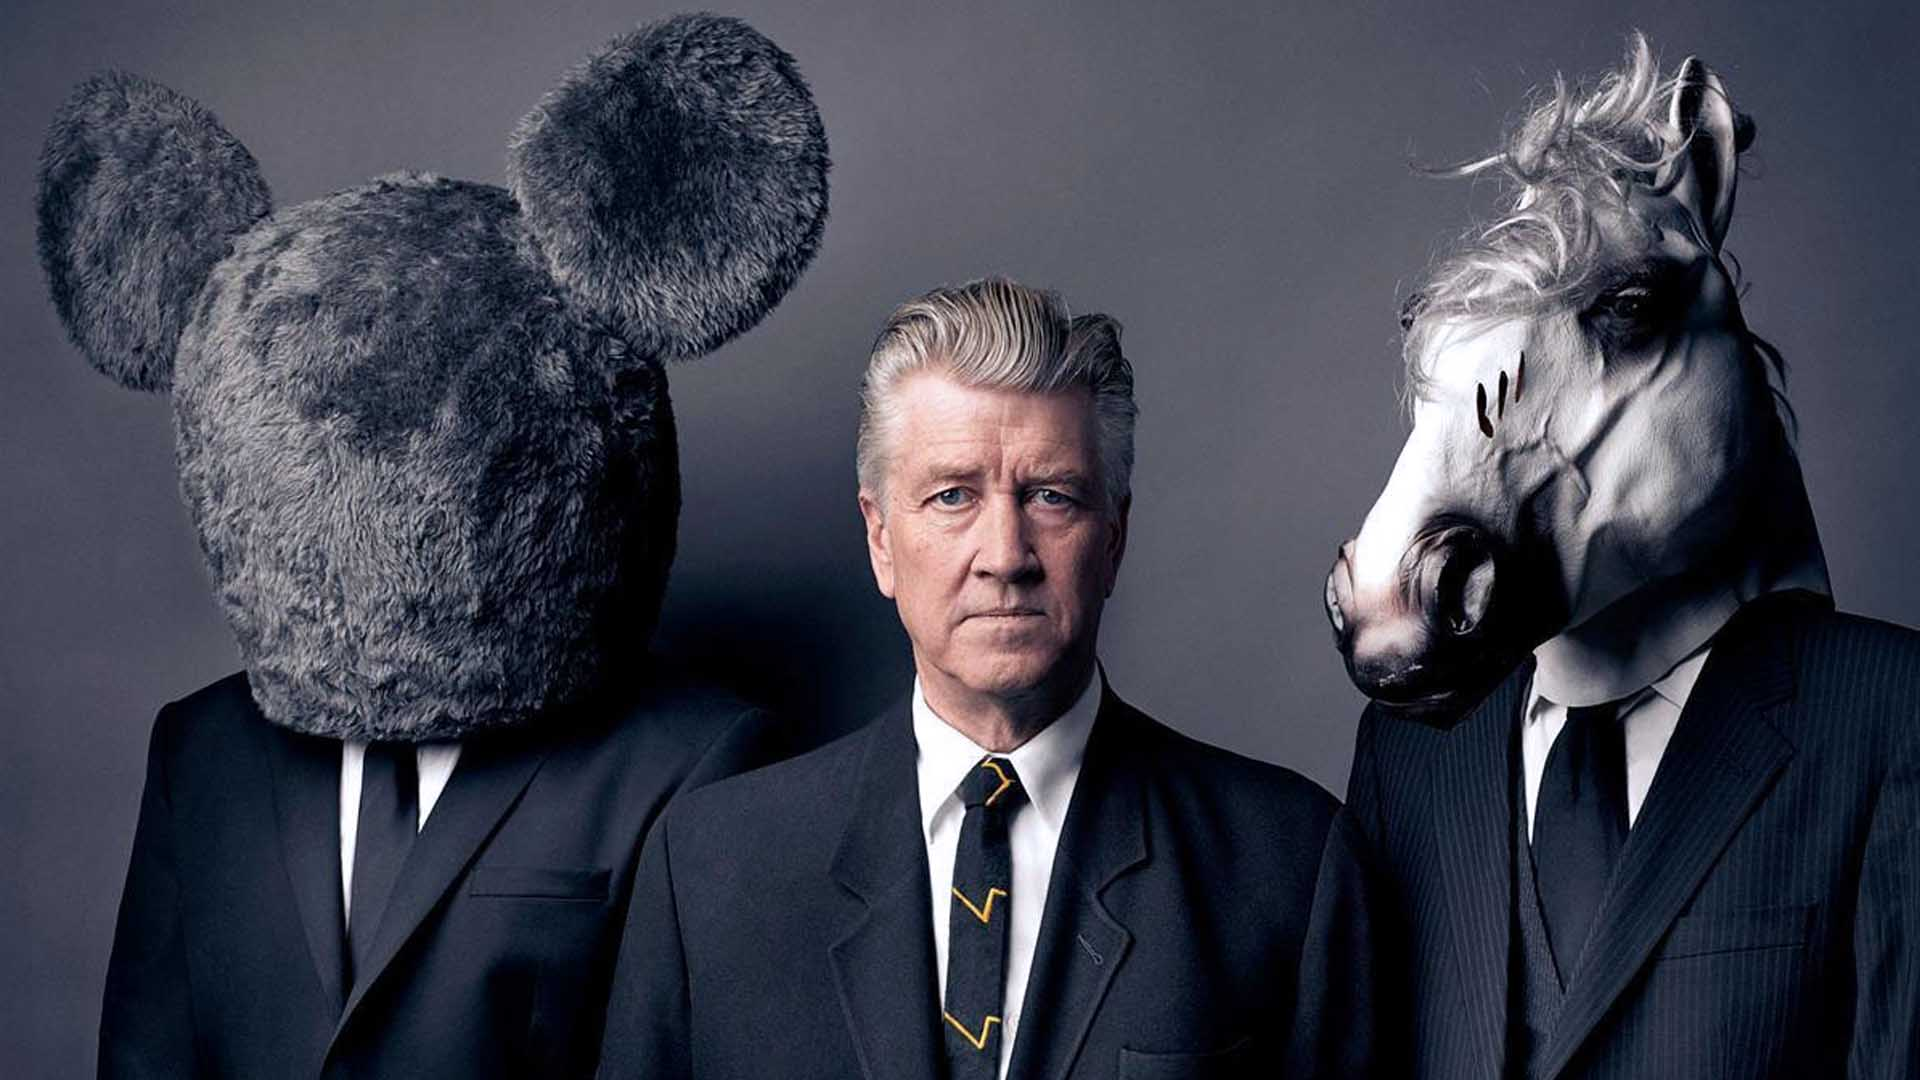 Il regista visionario David Lynch